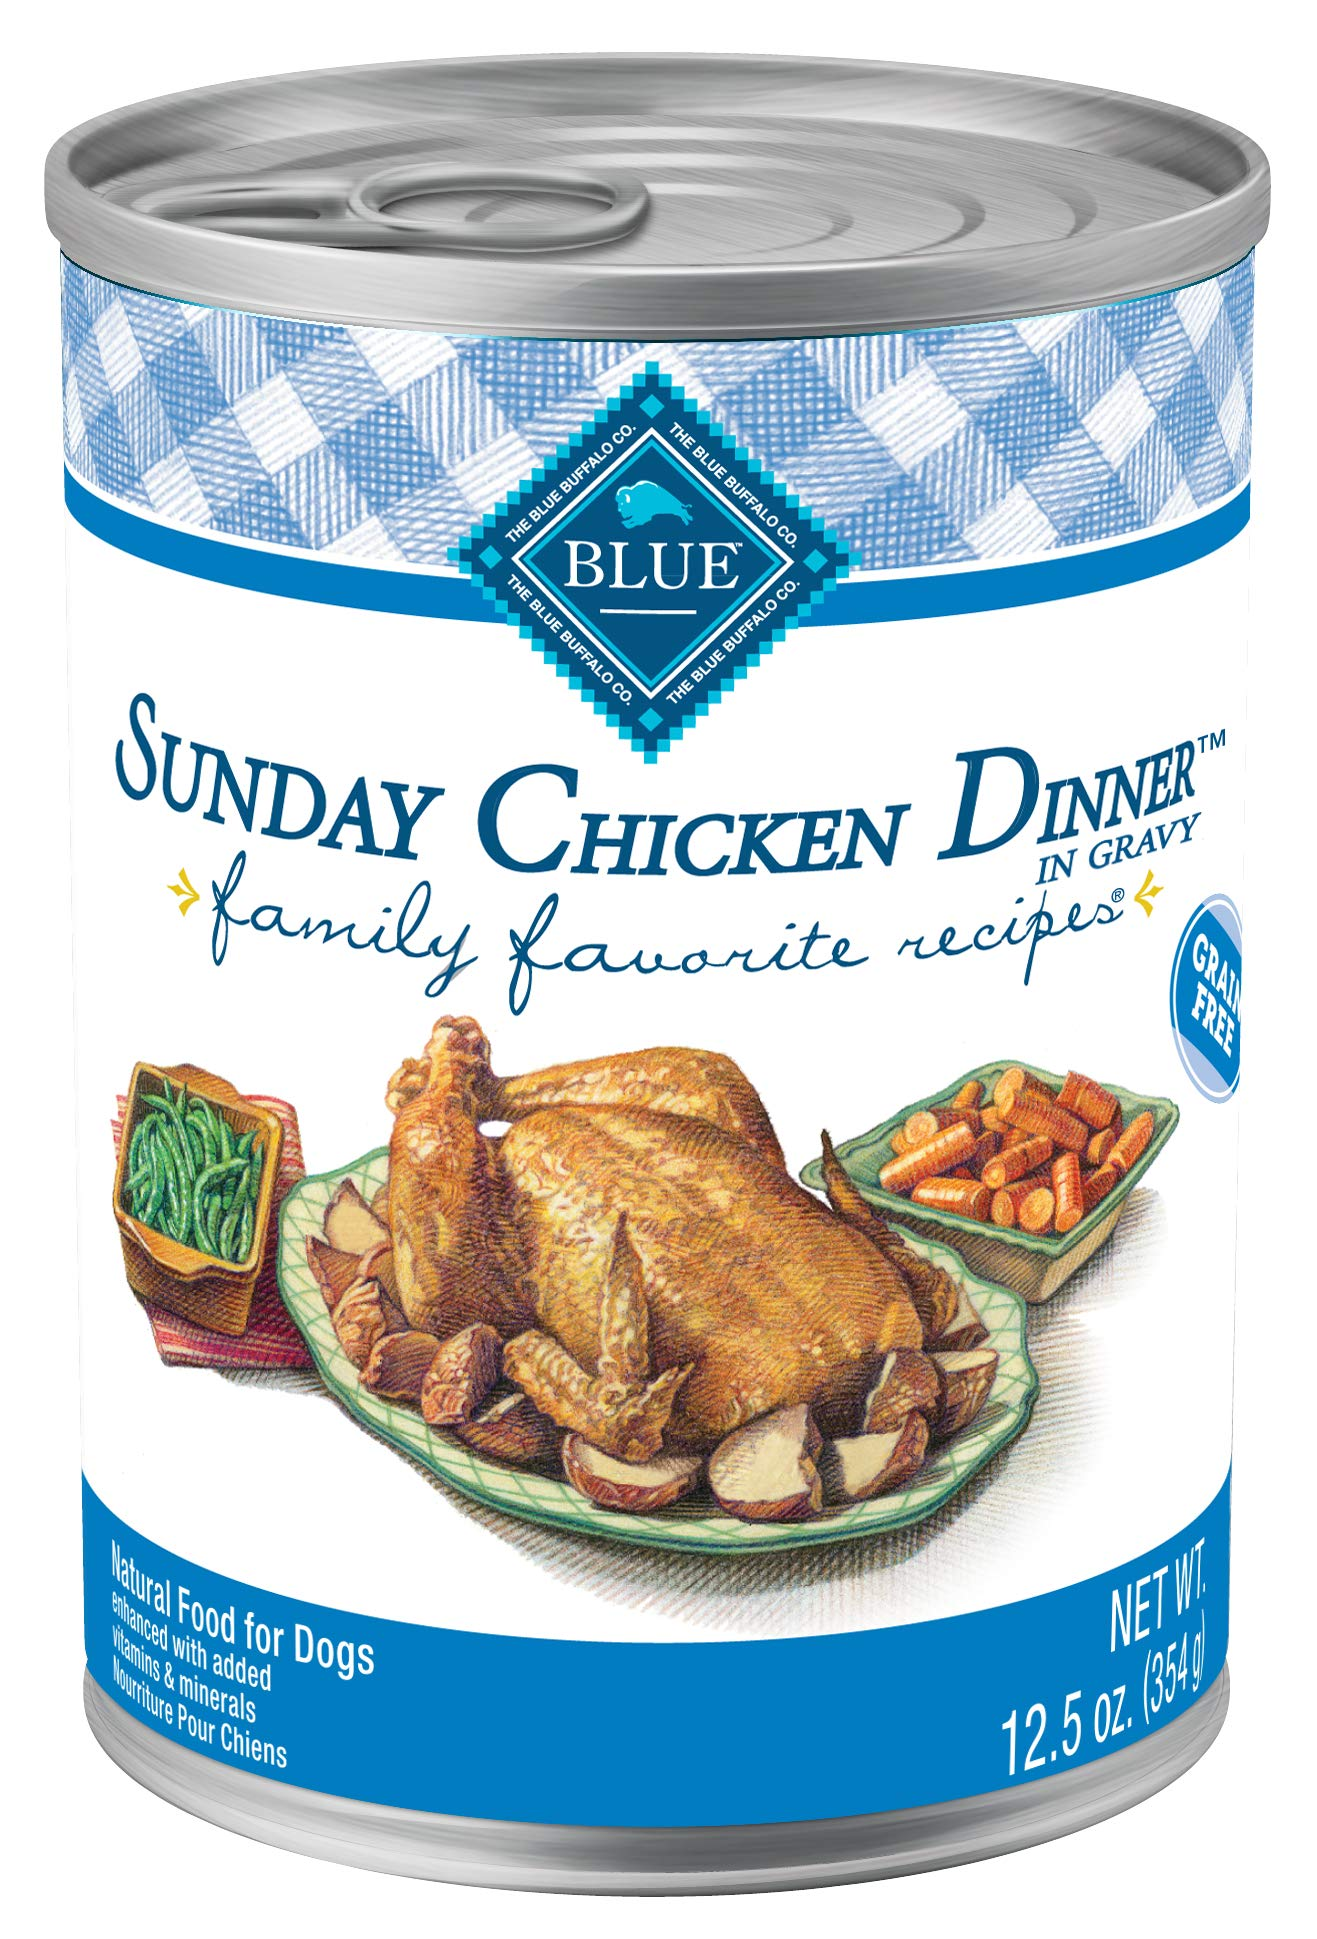 Blue Buffalo Family Favorites Natural Adult Wet Dog Food, Sunday Chicken 12.5-oz can (Pack of 12) by Blue Buffalo